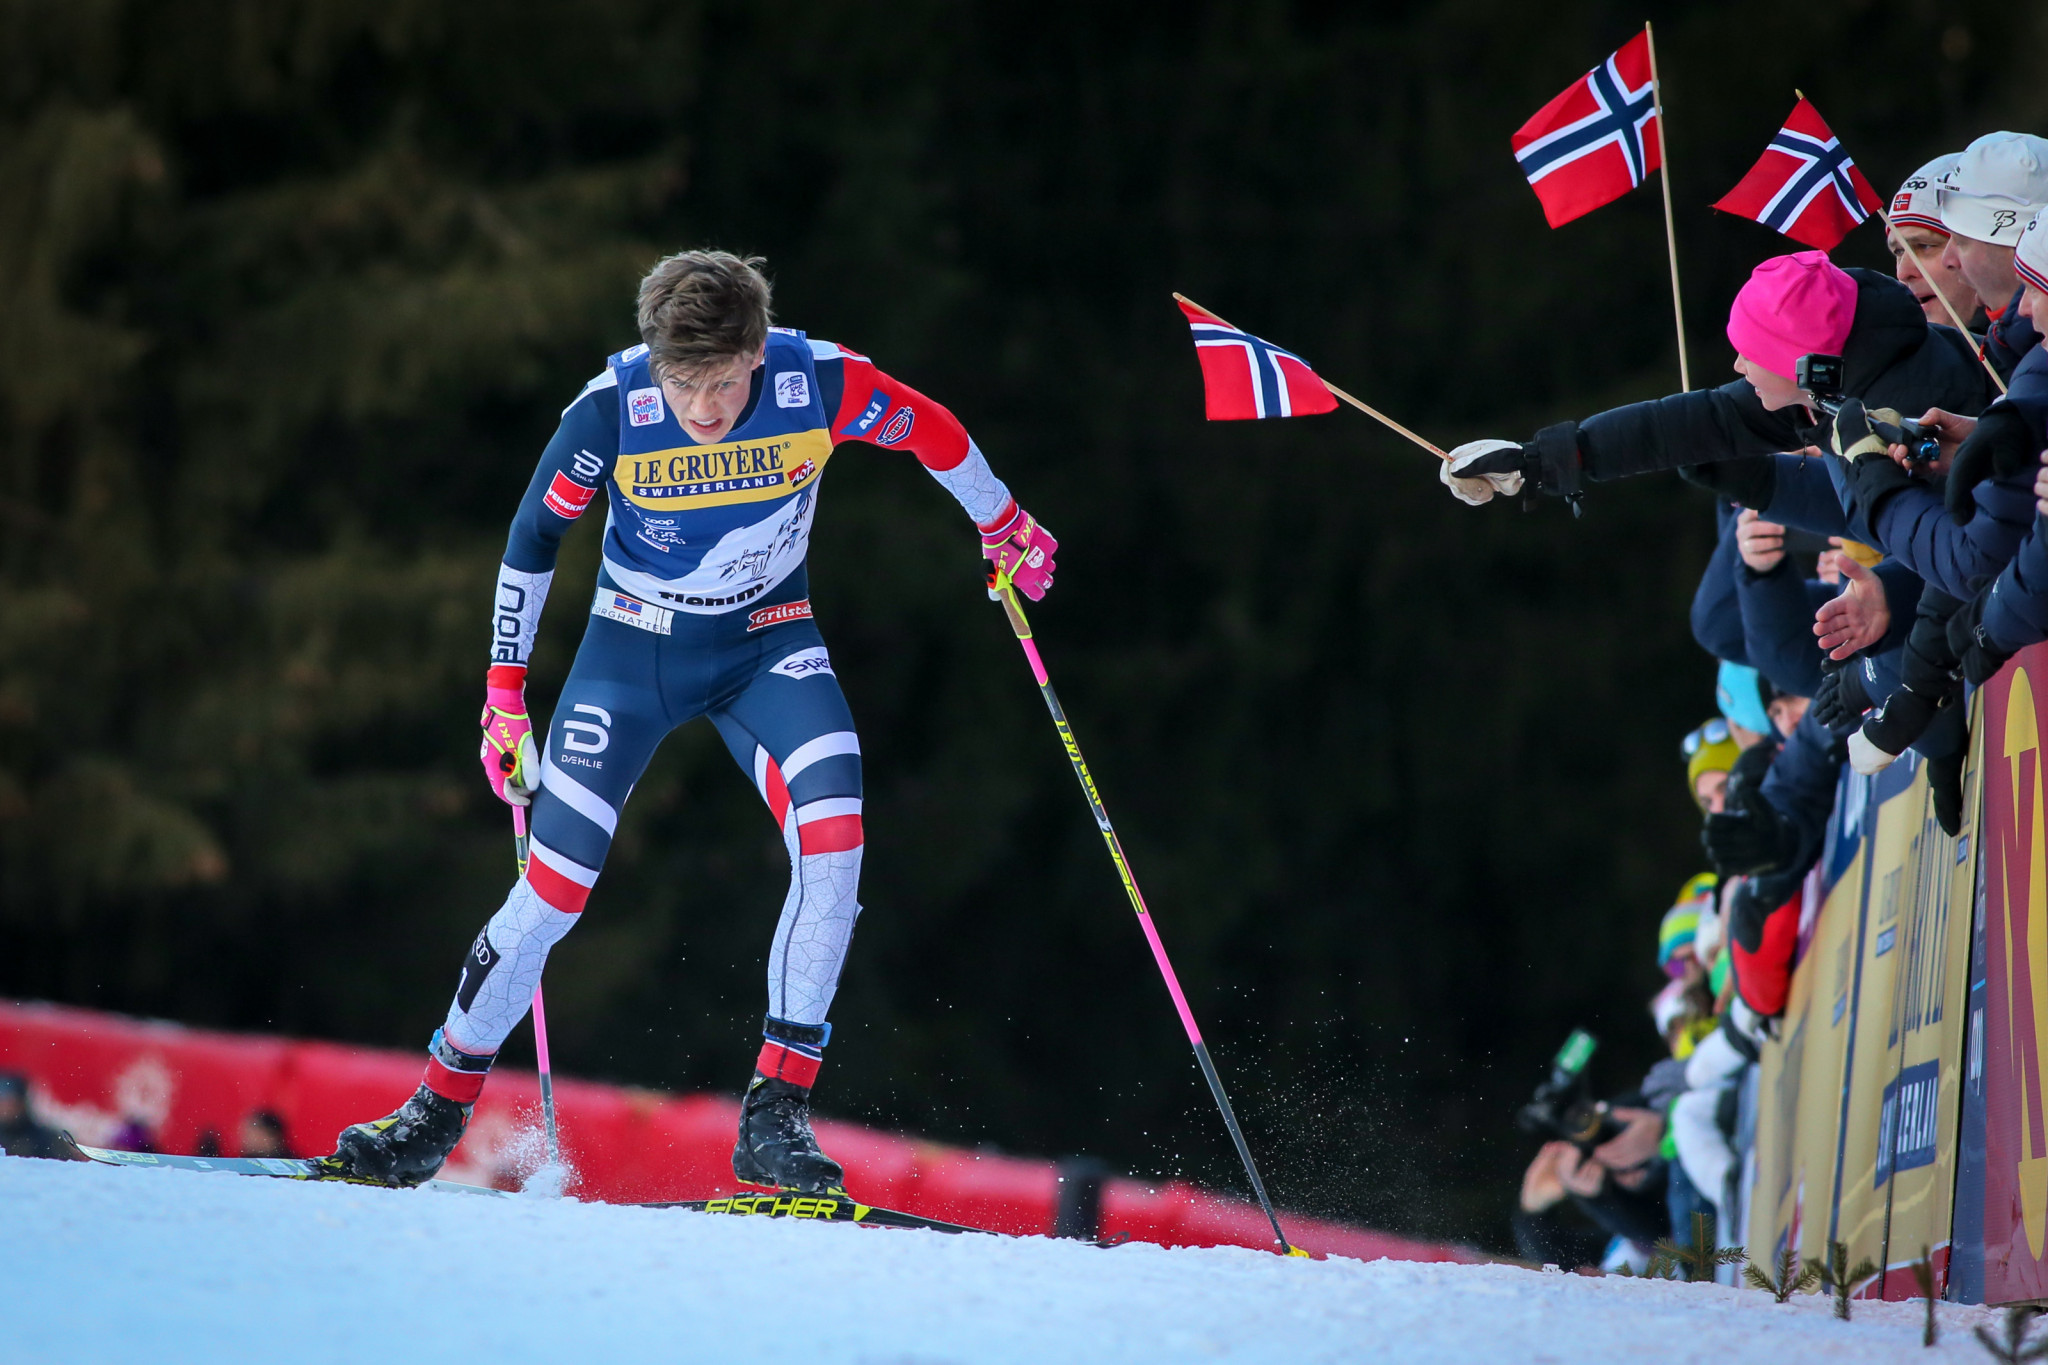 Norway seeking further success at FIS Cross-Country World Cup in Lahti